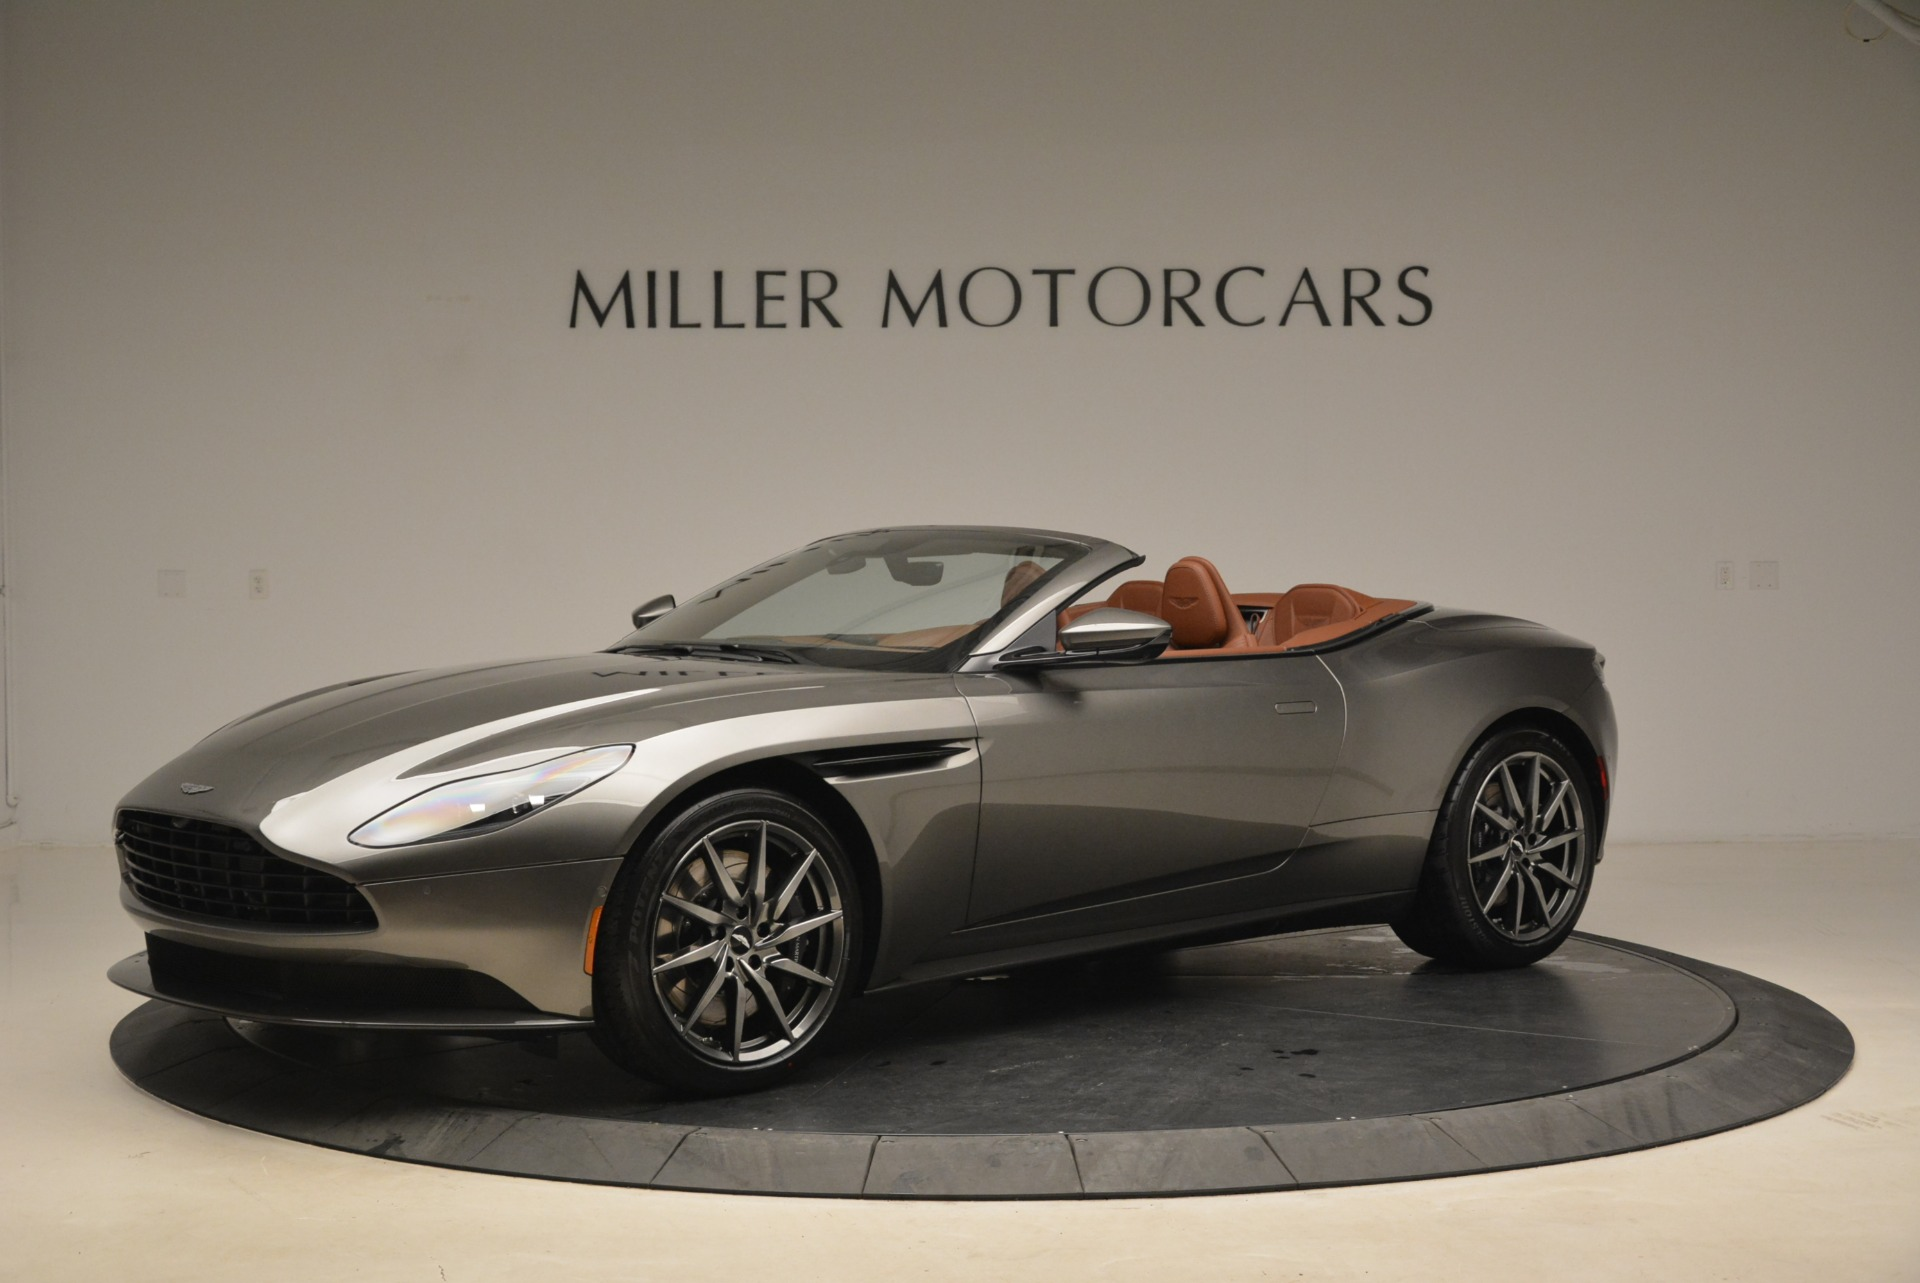 New 2019 Aston Martin DB11 Volante  For Sale In Greenwich, CT. Alfa Romeo of Greenwich, A1284 2209_p2